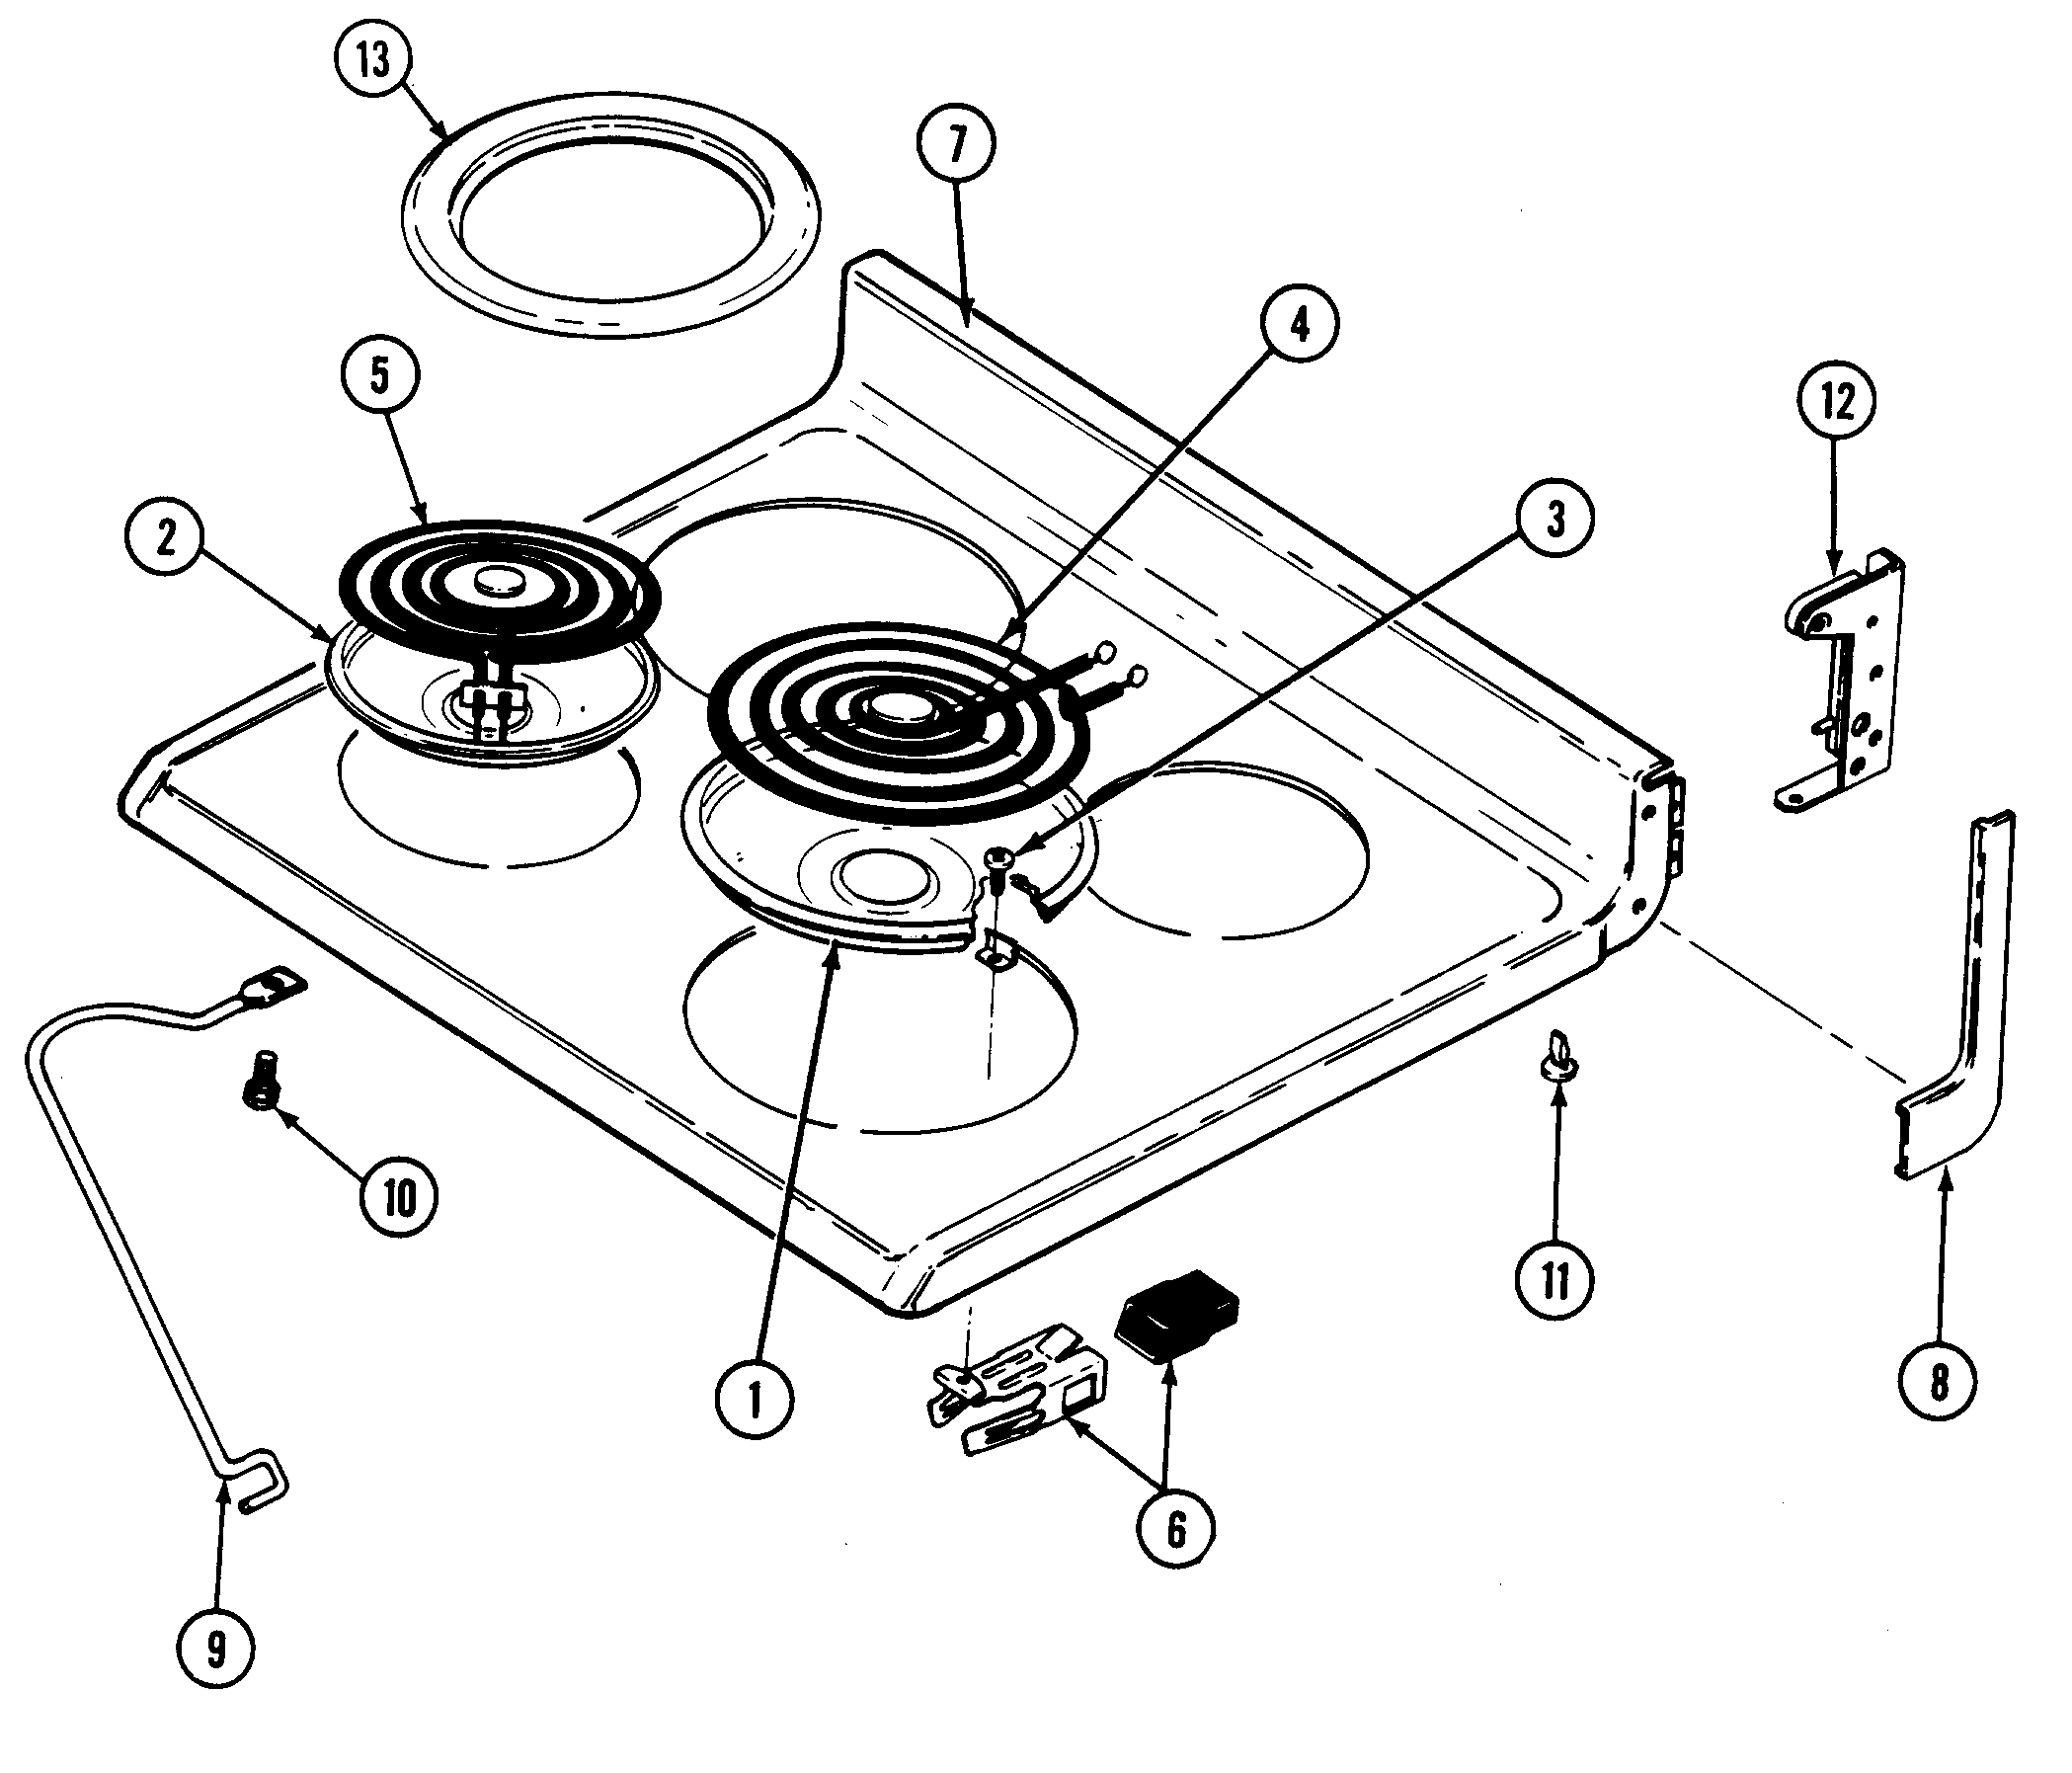 top assembly parts maytag cre9500adw timer stove clocks and appliance timers stove diagram at bayanpartner.co